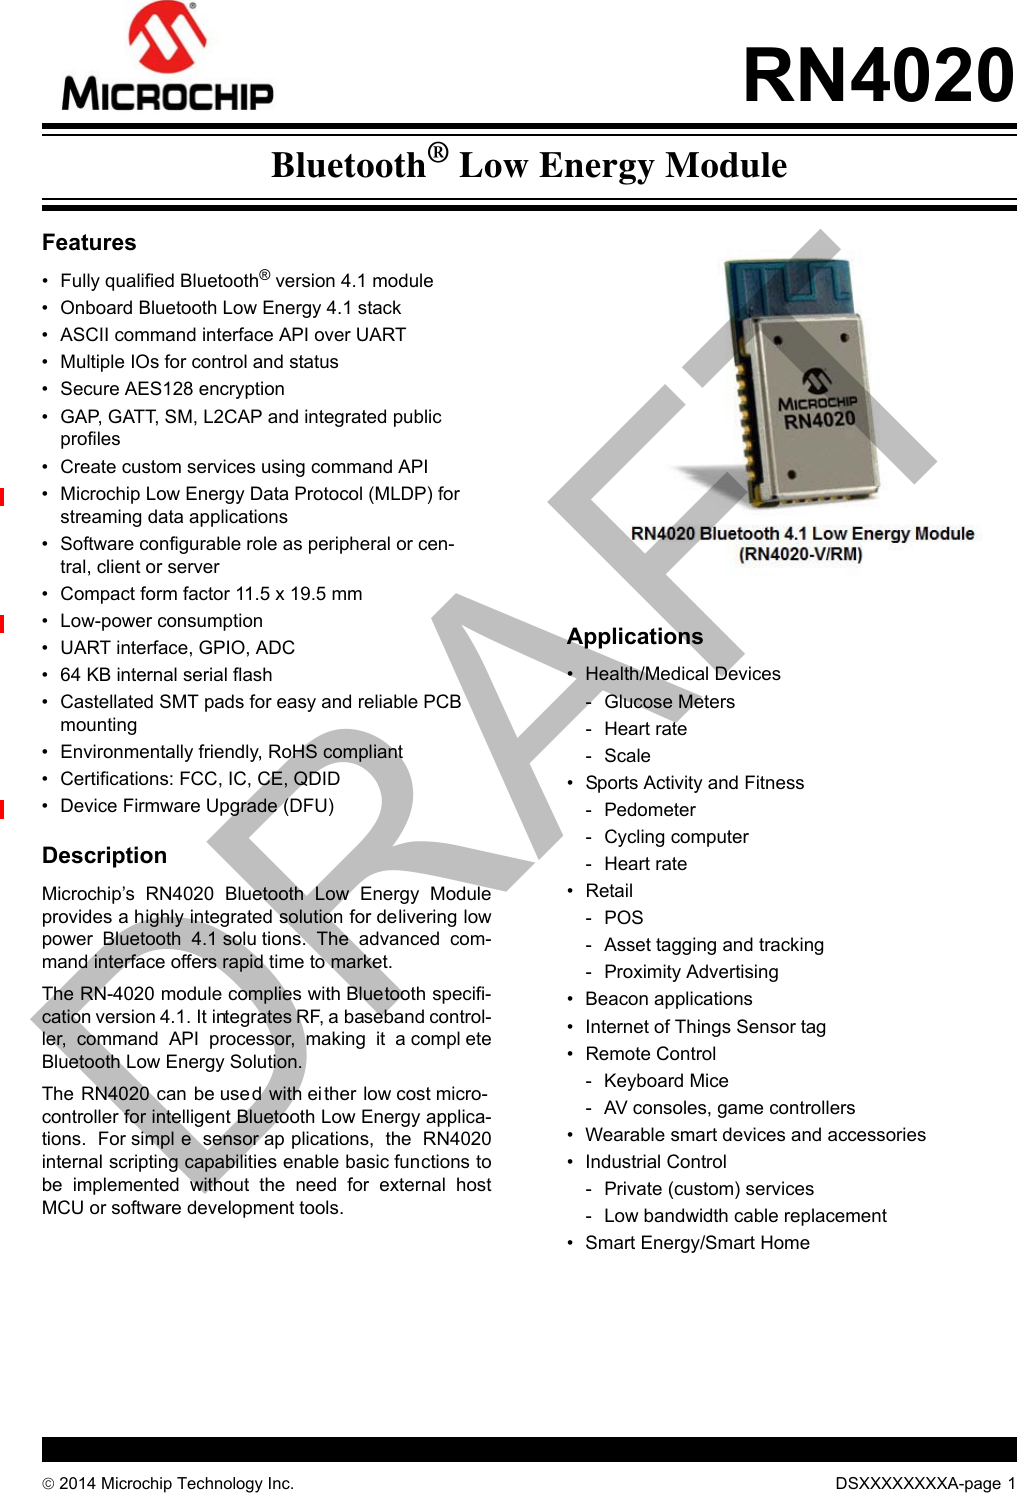 Cat6 Cable U2013 Micro Solutions Manual Guide